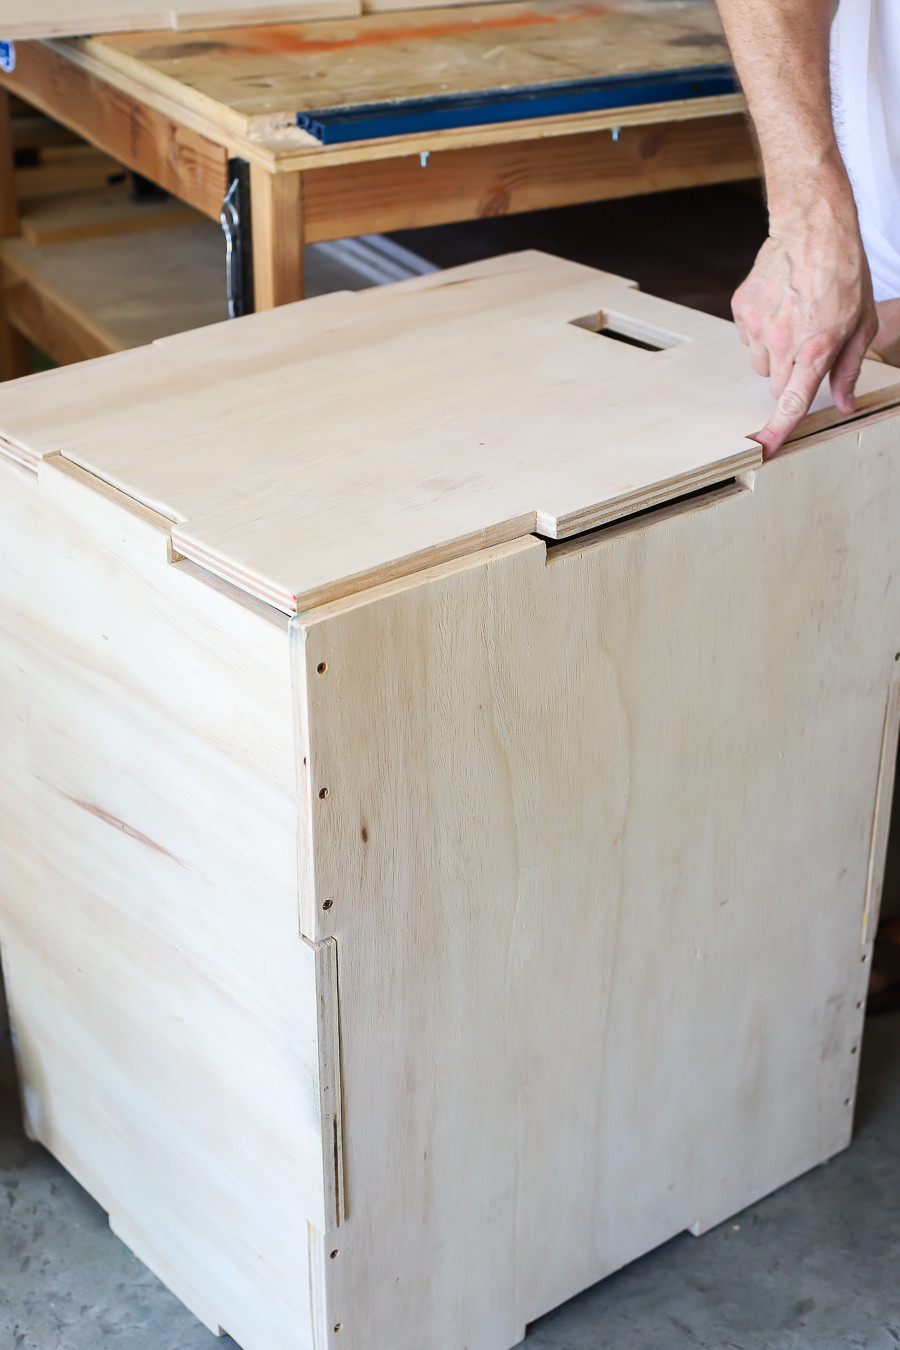 Best ideas about DIY Plyometric Box . Save or Pin Build a DIY 3 in 1 Plyometric Box for Box Jump Exercises Now.